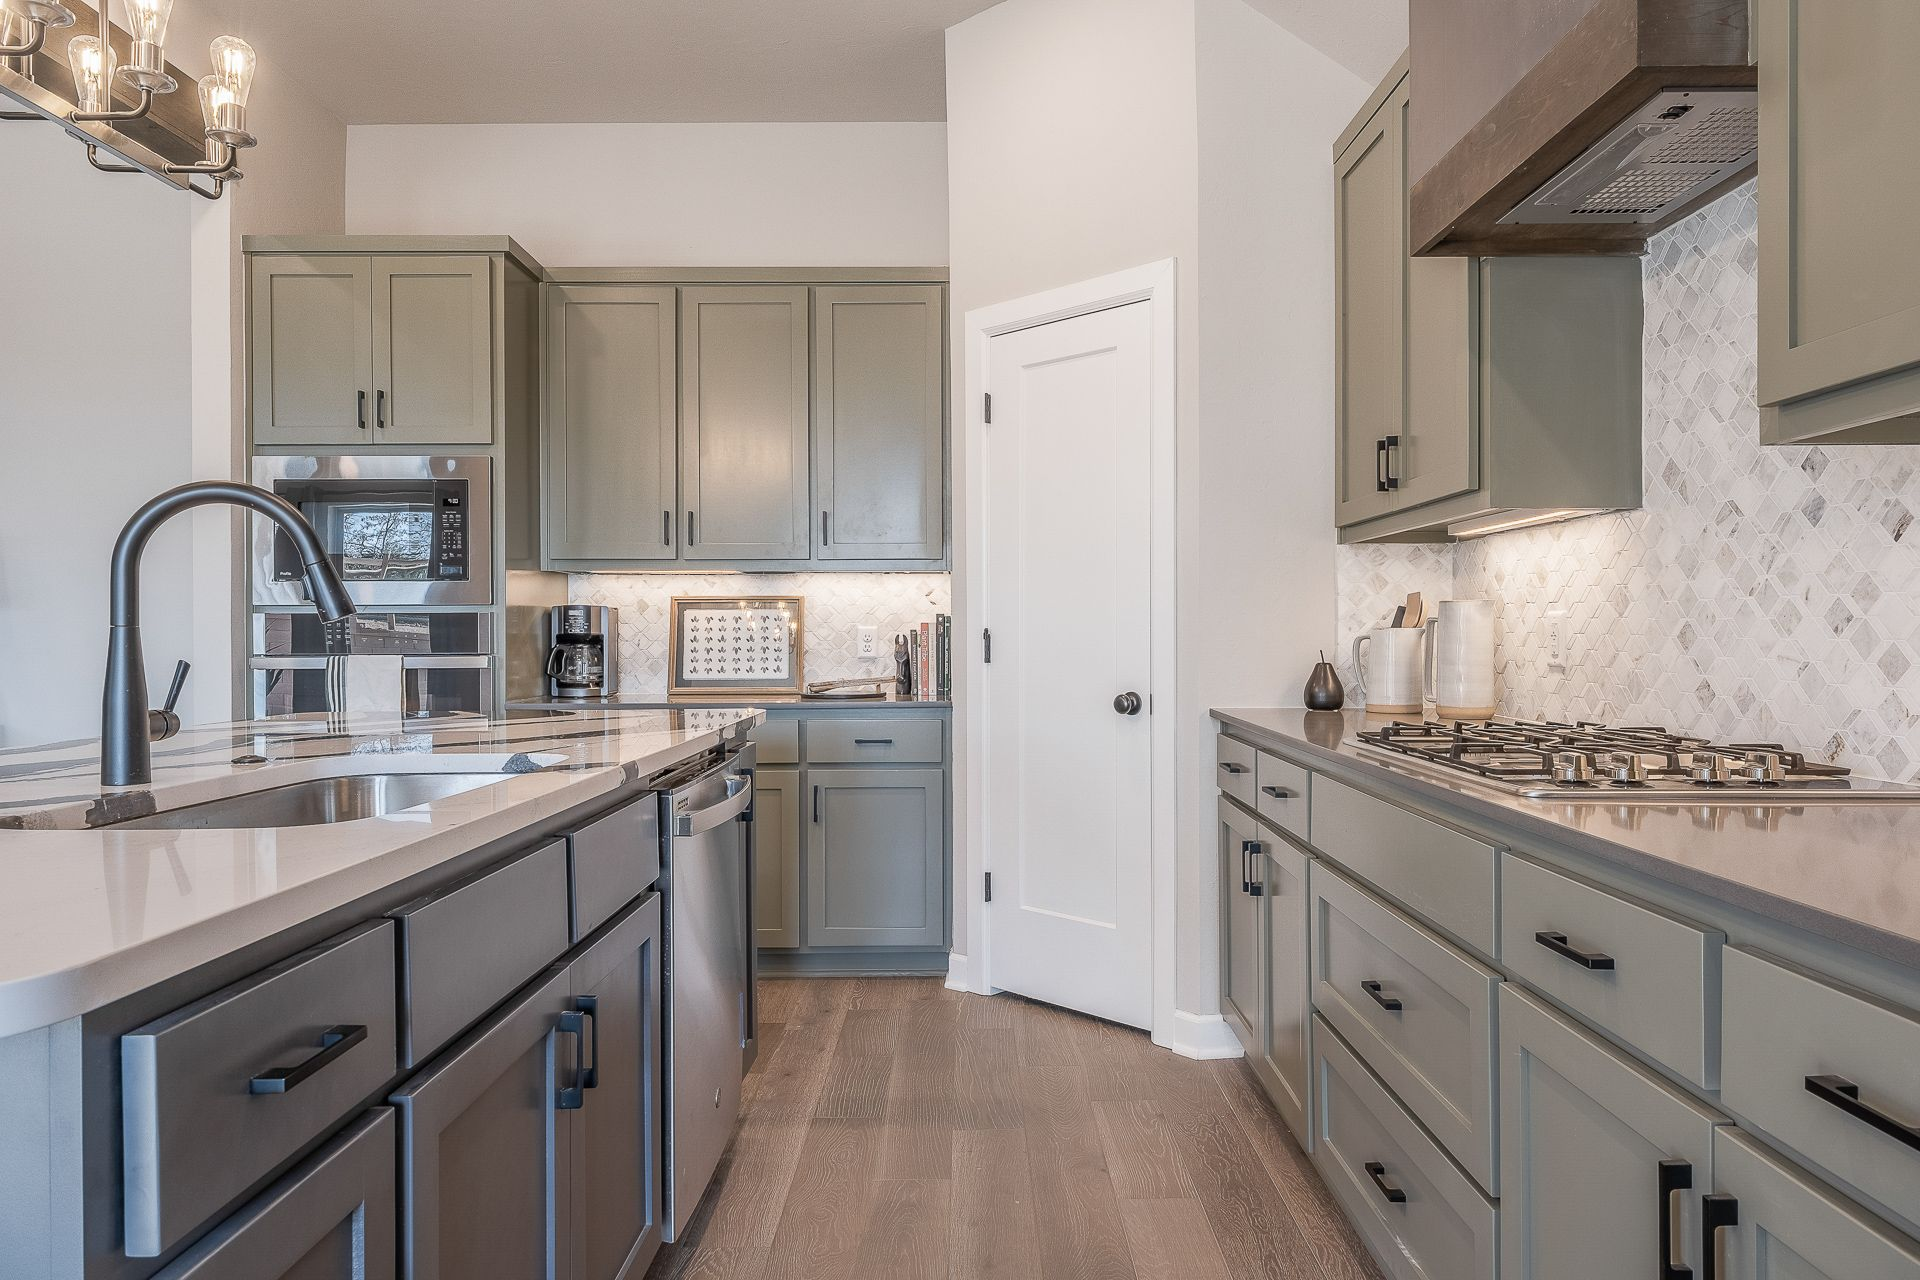 Kitchen featured in the Jacobson By Ideal Homes in Oklahoma City, OK